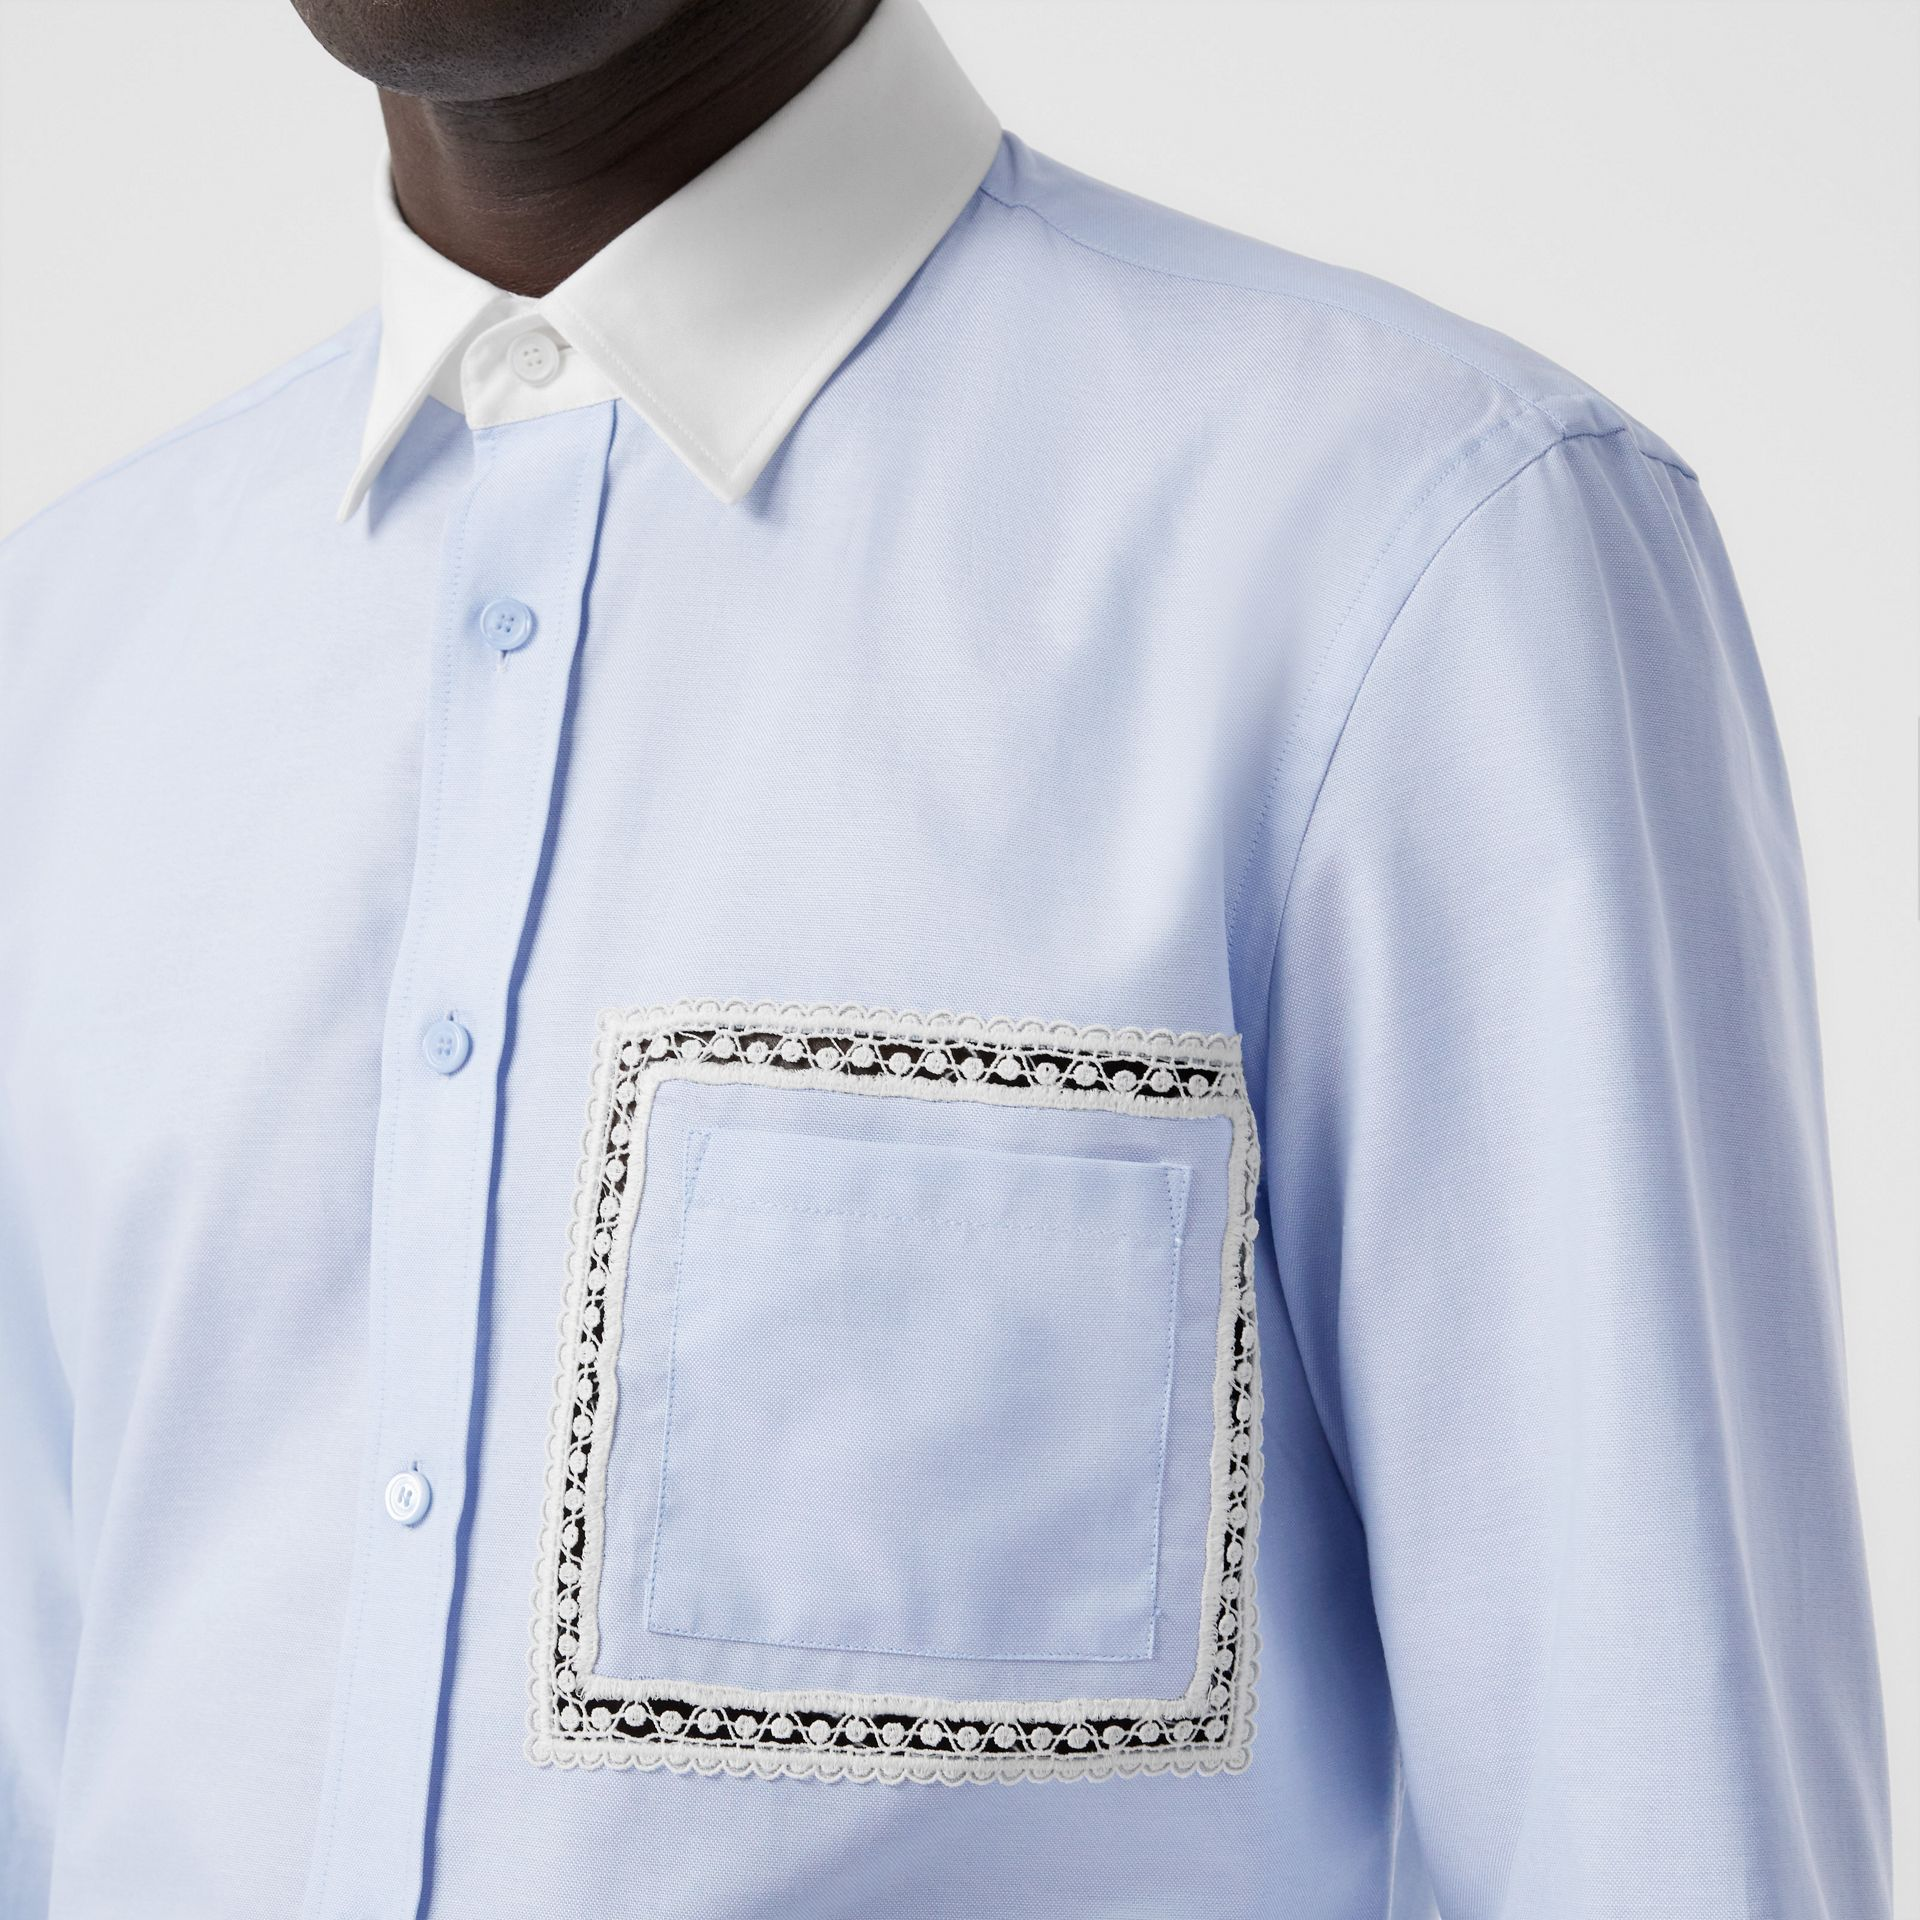 Classic Fit Lace Detail Cotton Oxford Shirt in Pale Blue | Burberry - gallery image 1